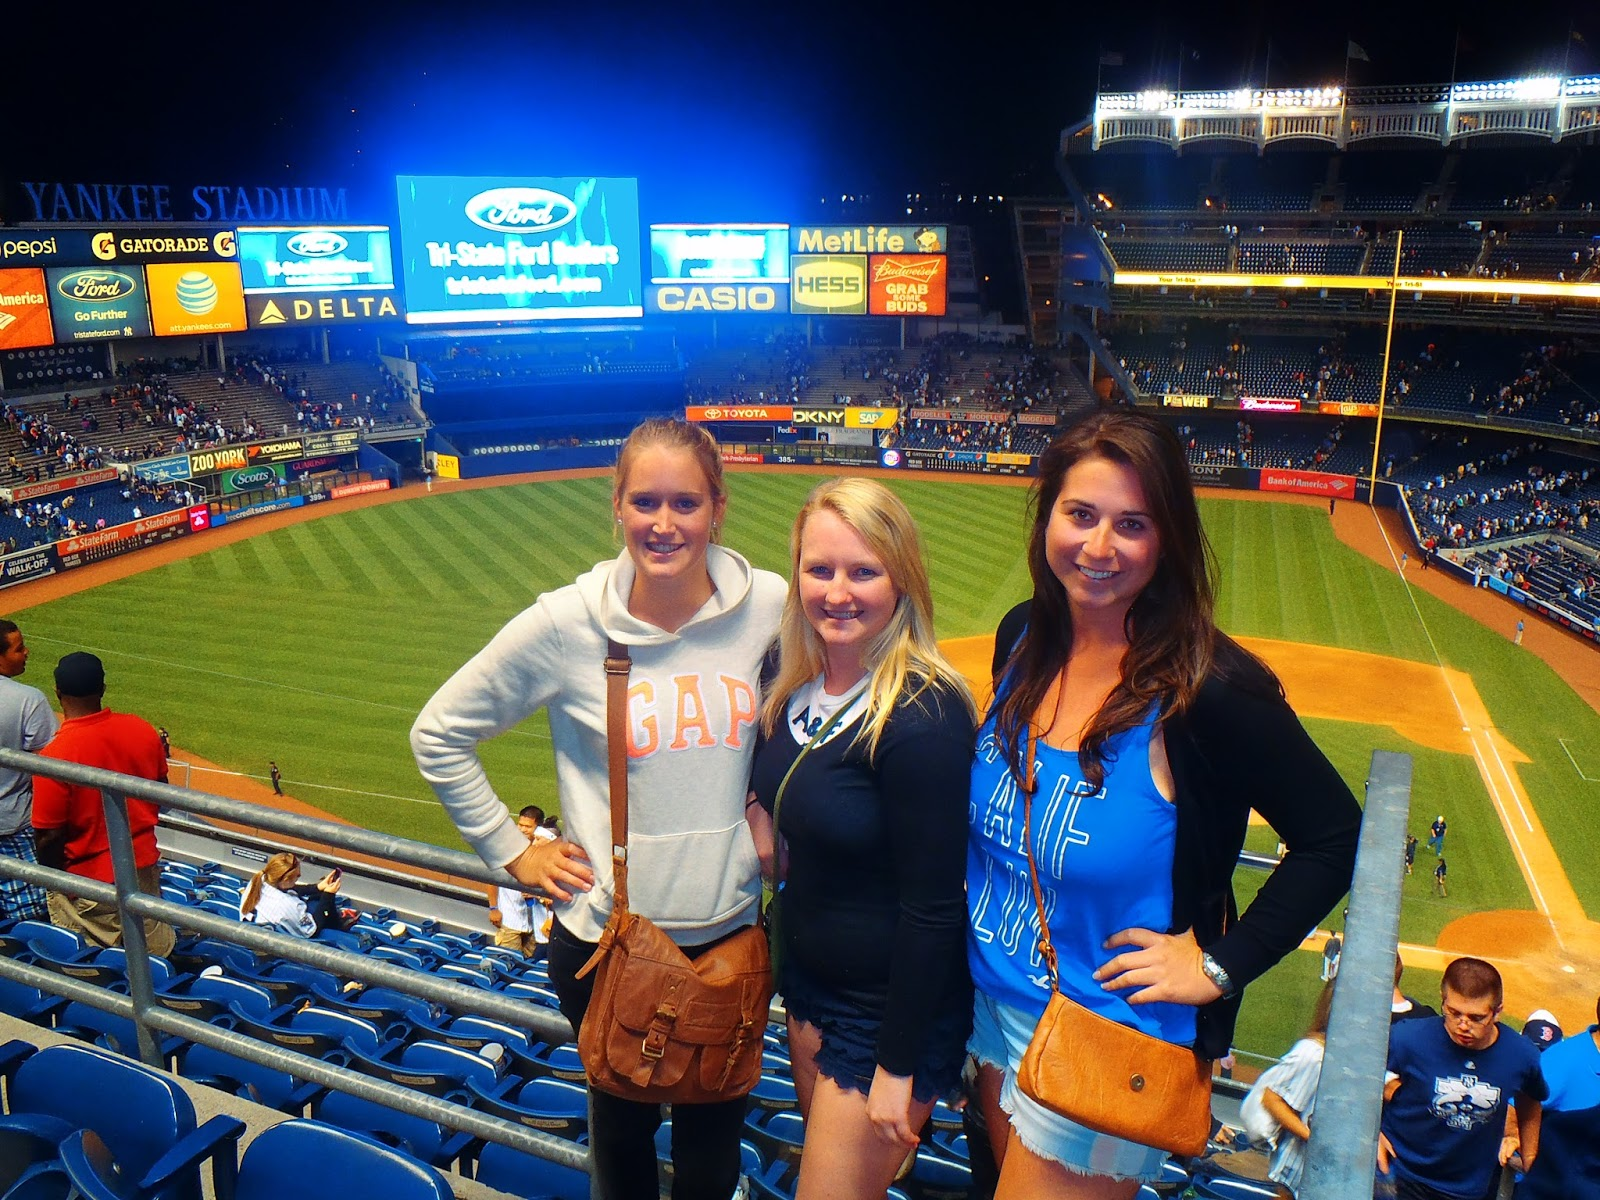 Girls at Yankee Stadium